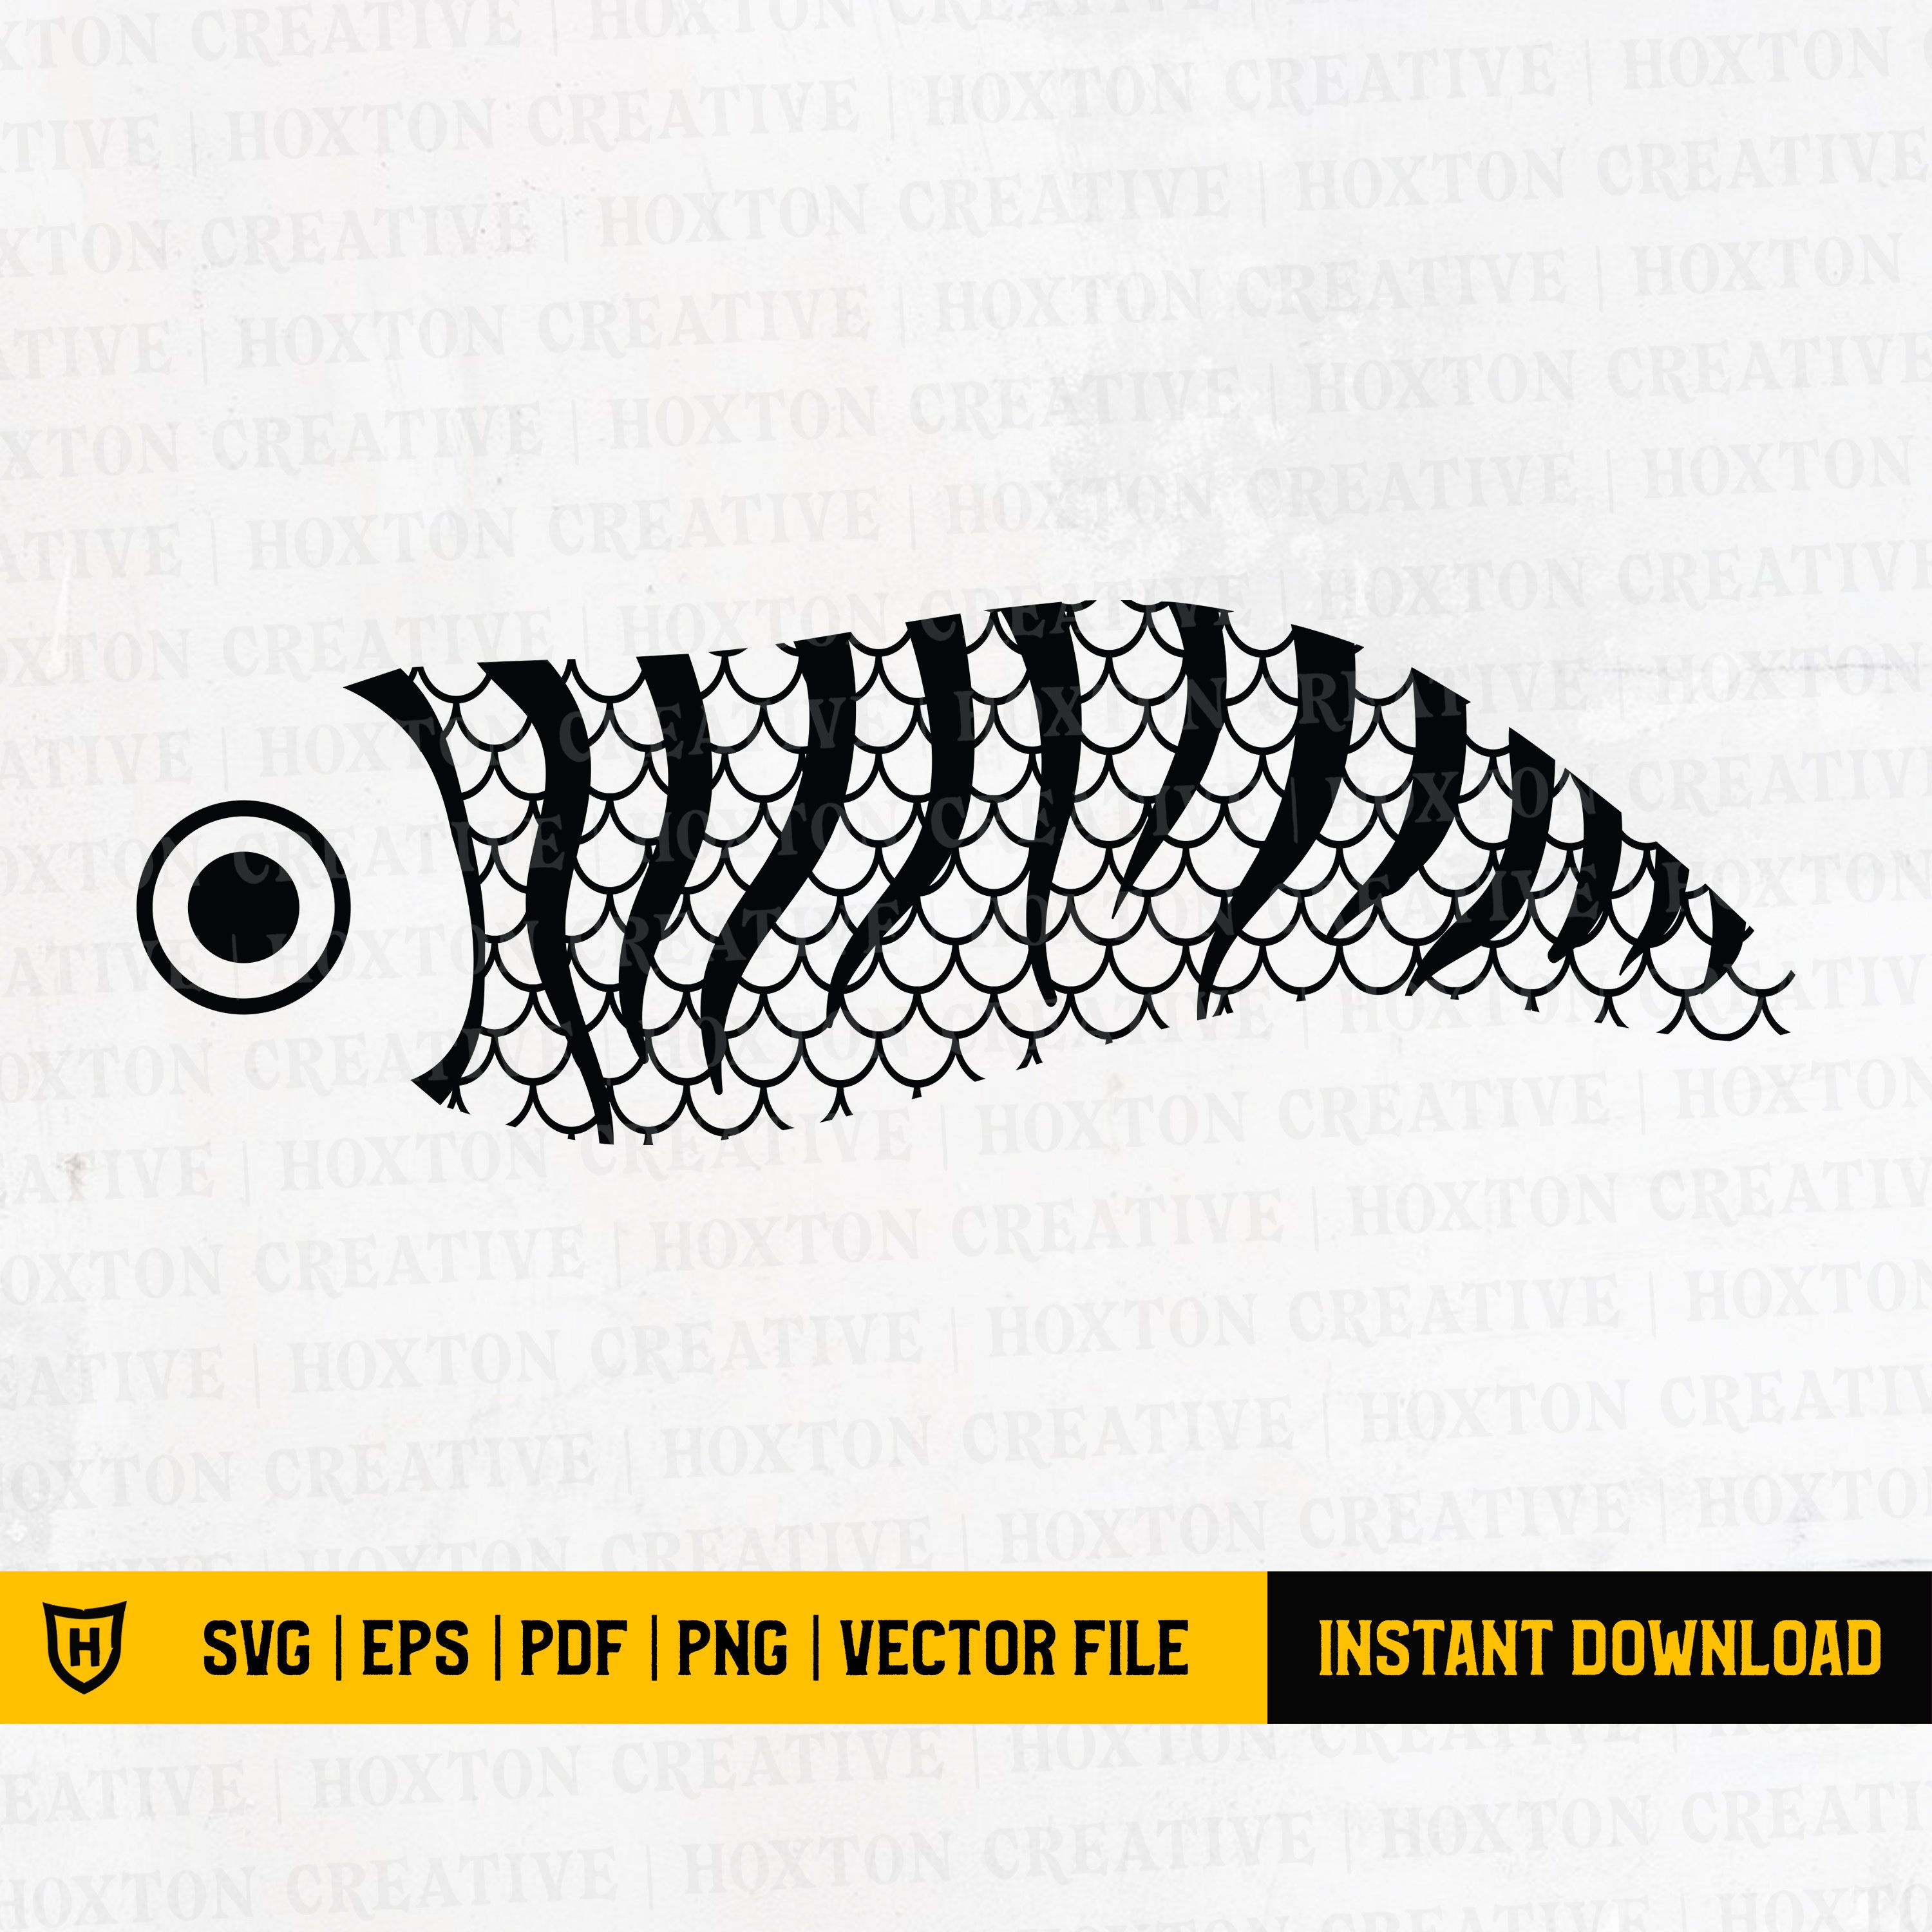 Download Fishing Lure Svg Fishing Lure Pattern Fish Clipart Lure Etsy In 2021 Fishing Lure Svg Lure Svg Fish Clipart